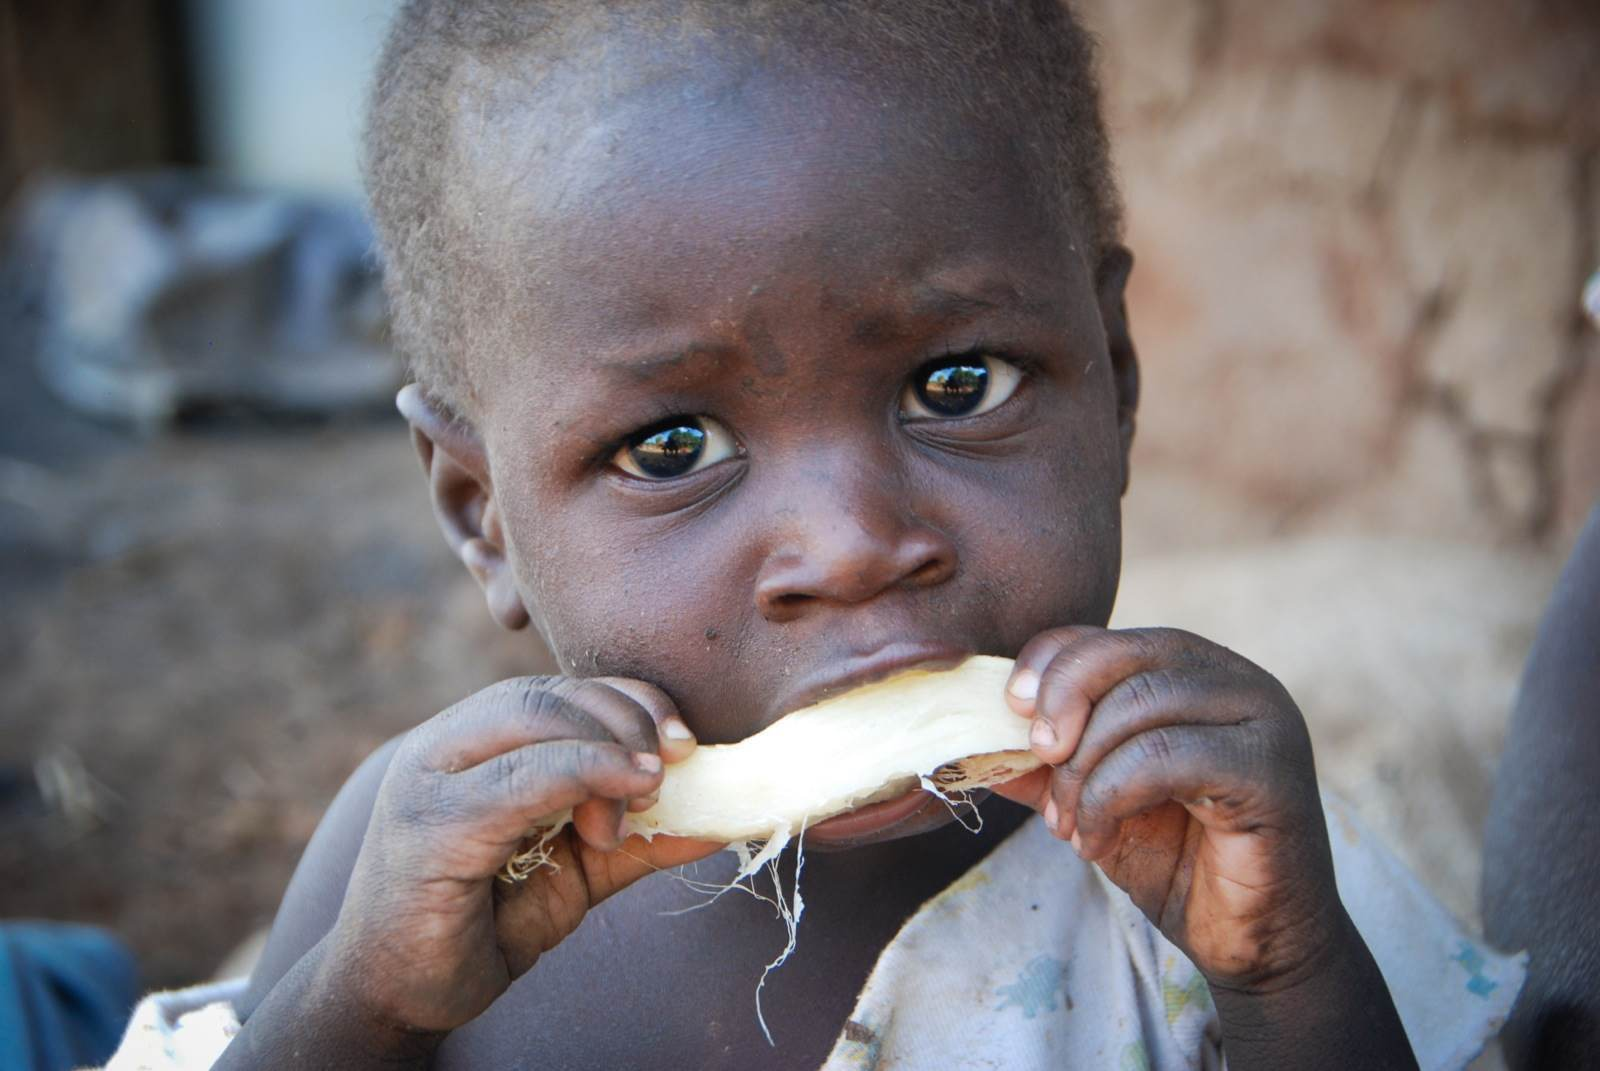 There will be worse famine in Zambia in 2020